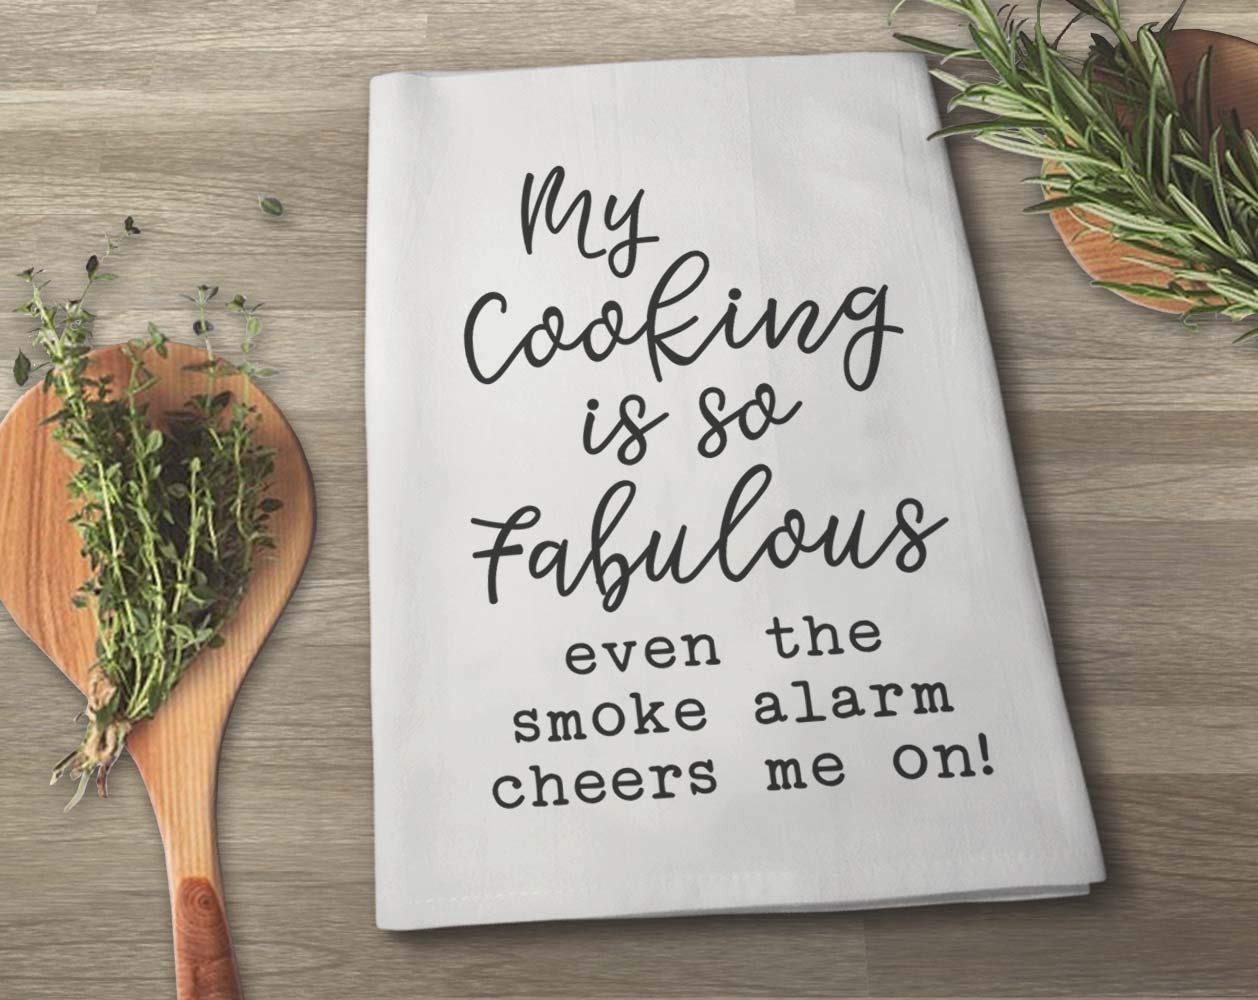 Highly Absorbent 100/% Cotton 27 x 27 Inches Honey Dew Gifts My Cooking is so Fabulous Flour Sack Towel Multi-Purpose Kitchen Dish Towel